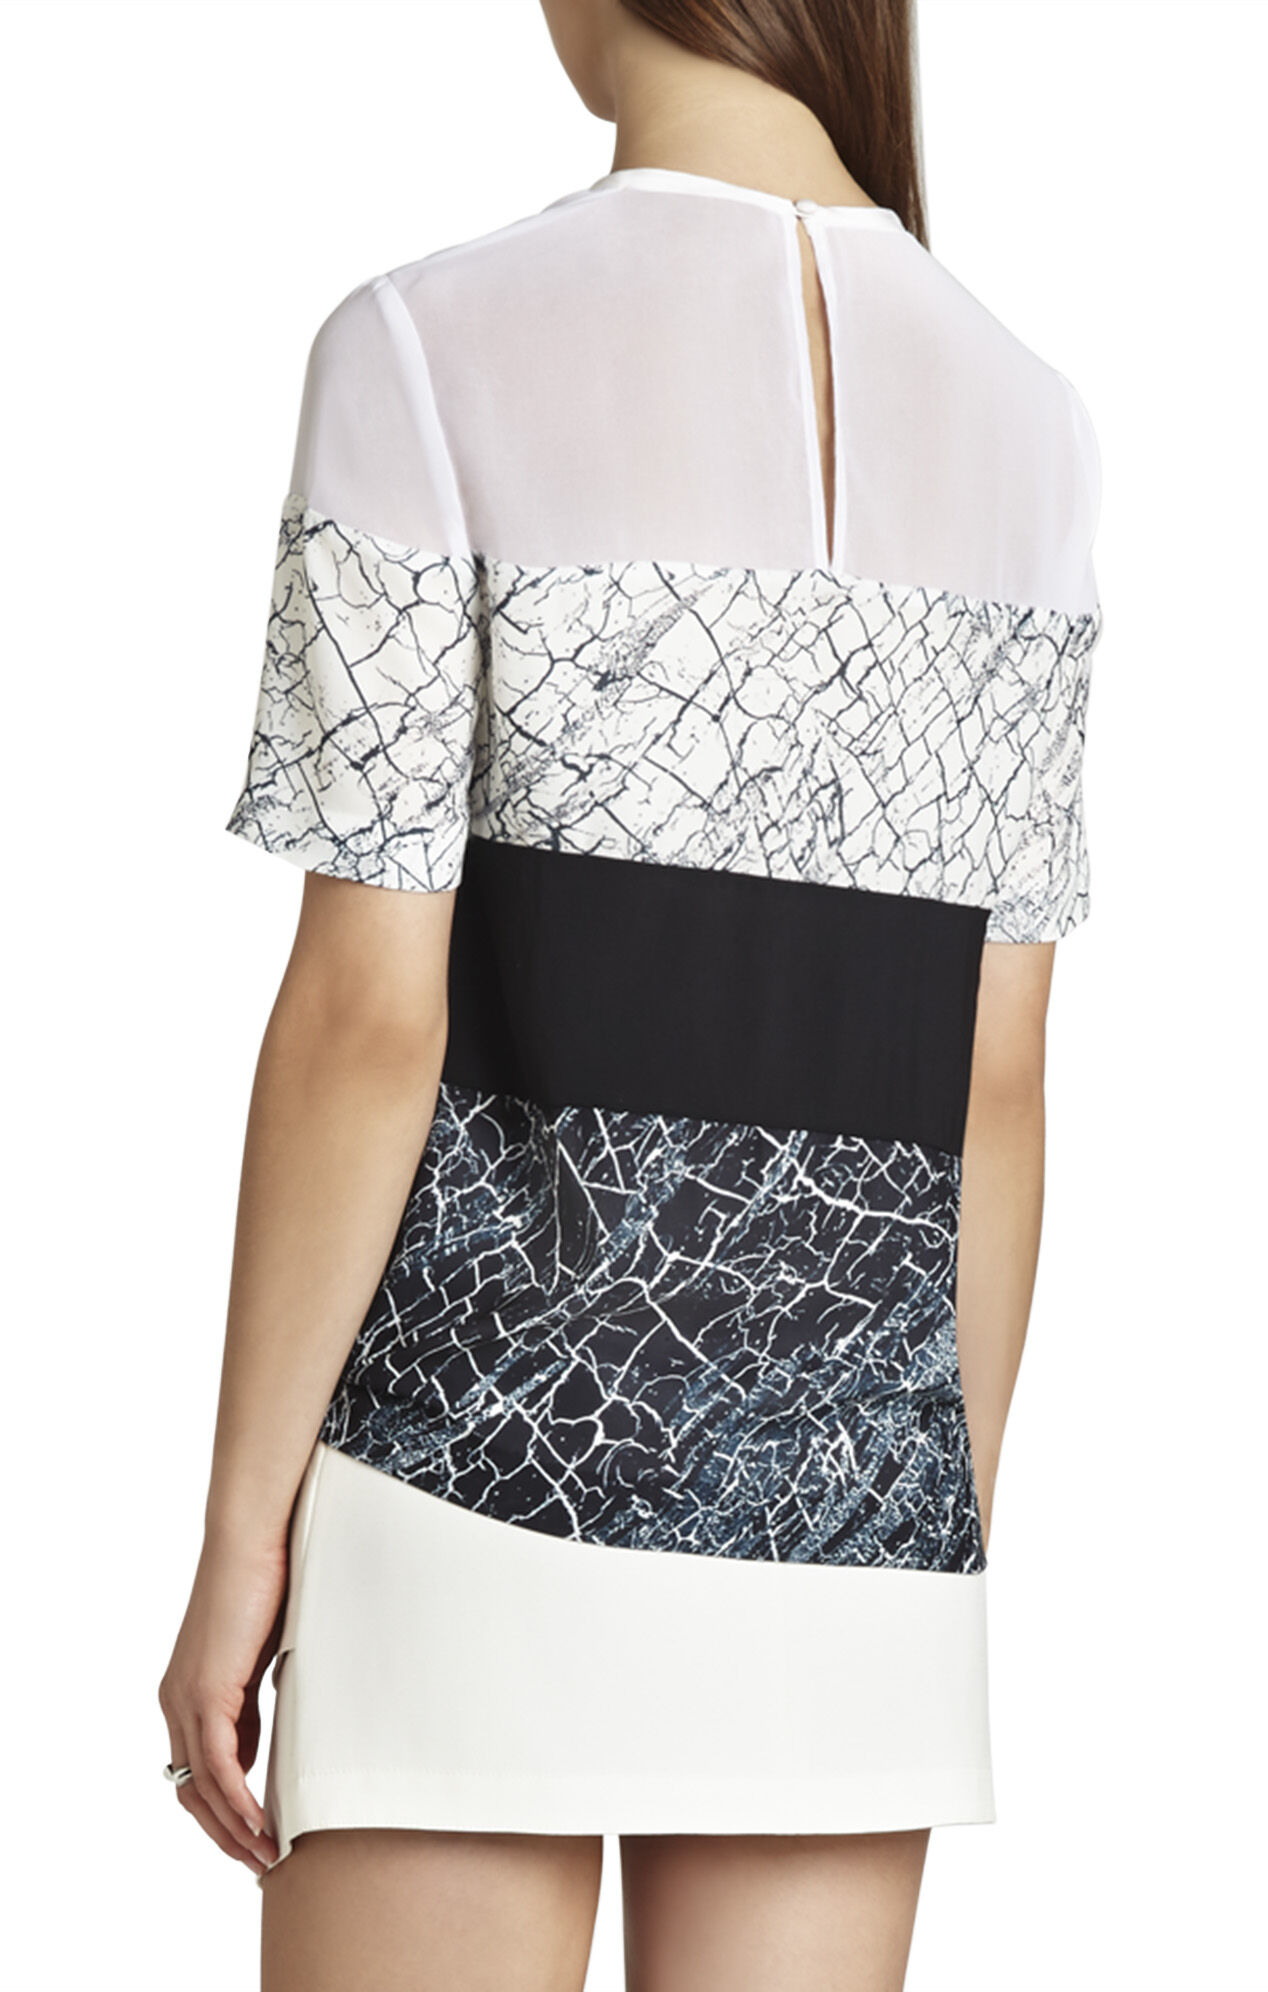 Caleste Print-Blocked Short-Sleeve Top